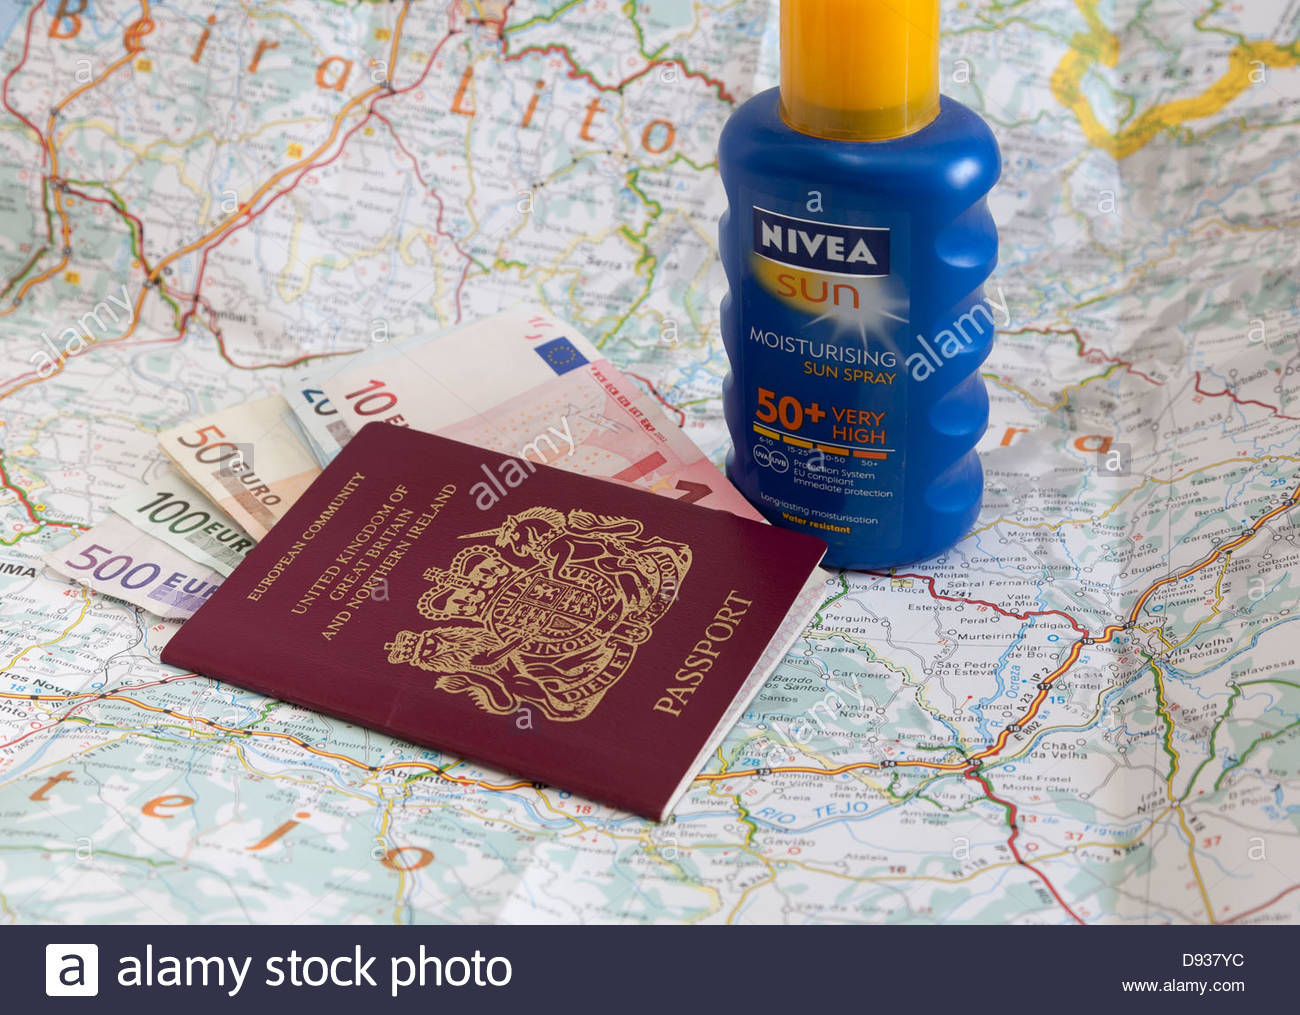 British passport, euro notes, bottle of sun screen and an open map of Portugal - Stock Image